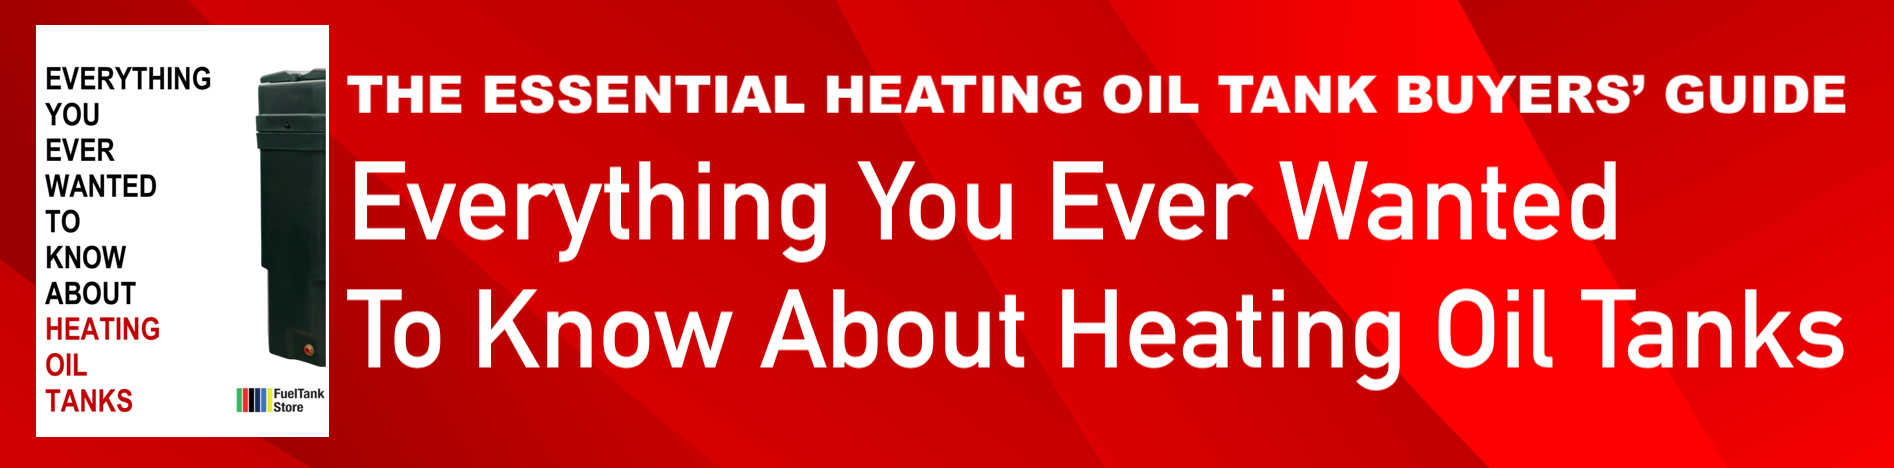 Heating Oil Tank Buyers' Guide Advertising Banner